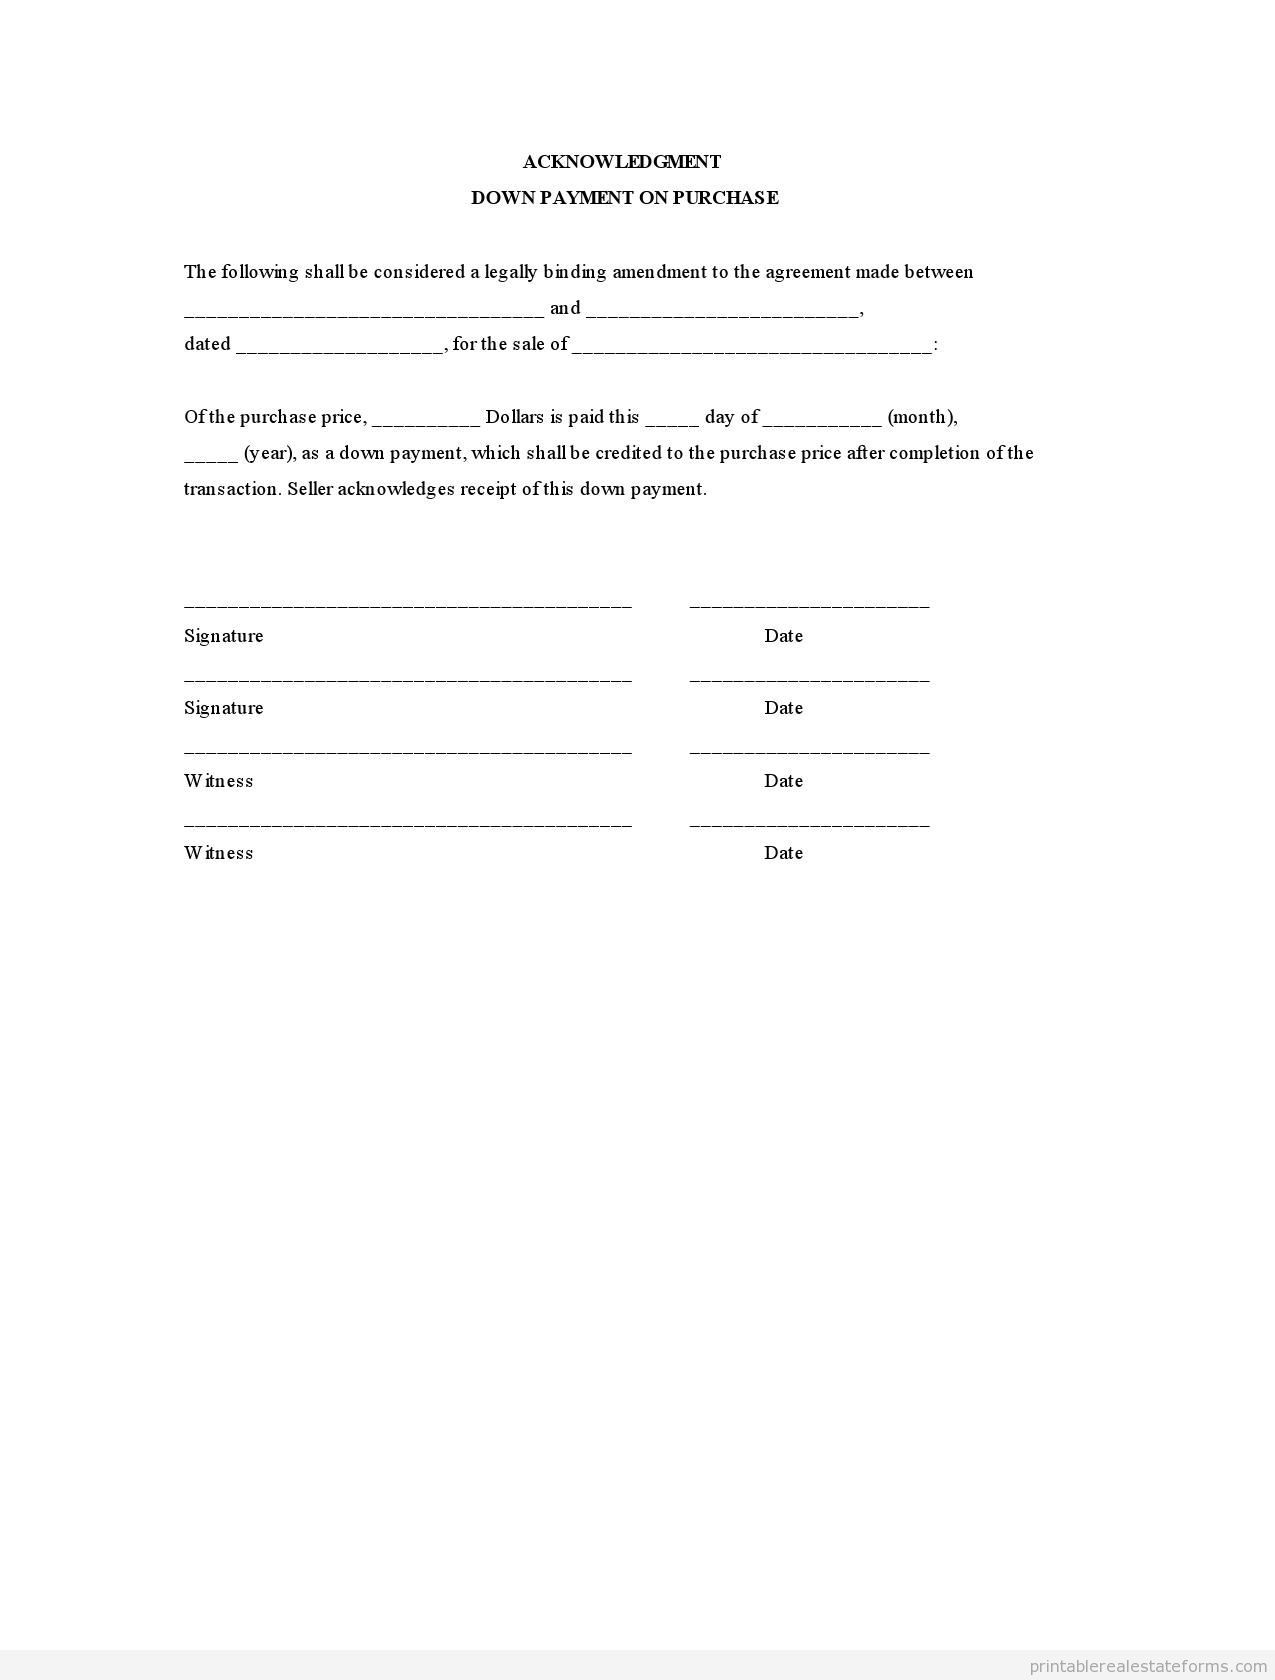 Sample Printable acknowledgment down payment on purchase Form – Acknowledgement Receipt Sample